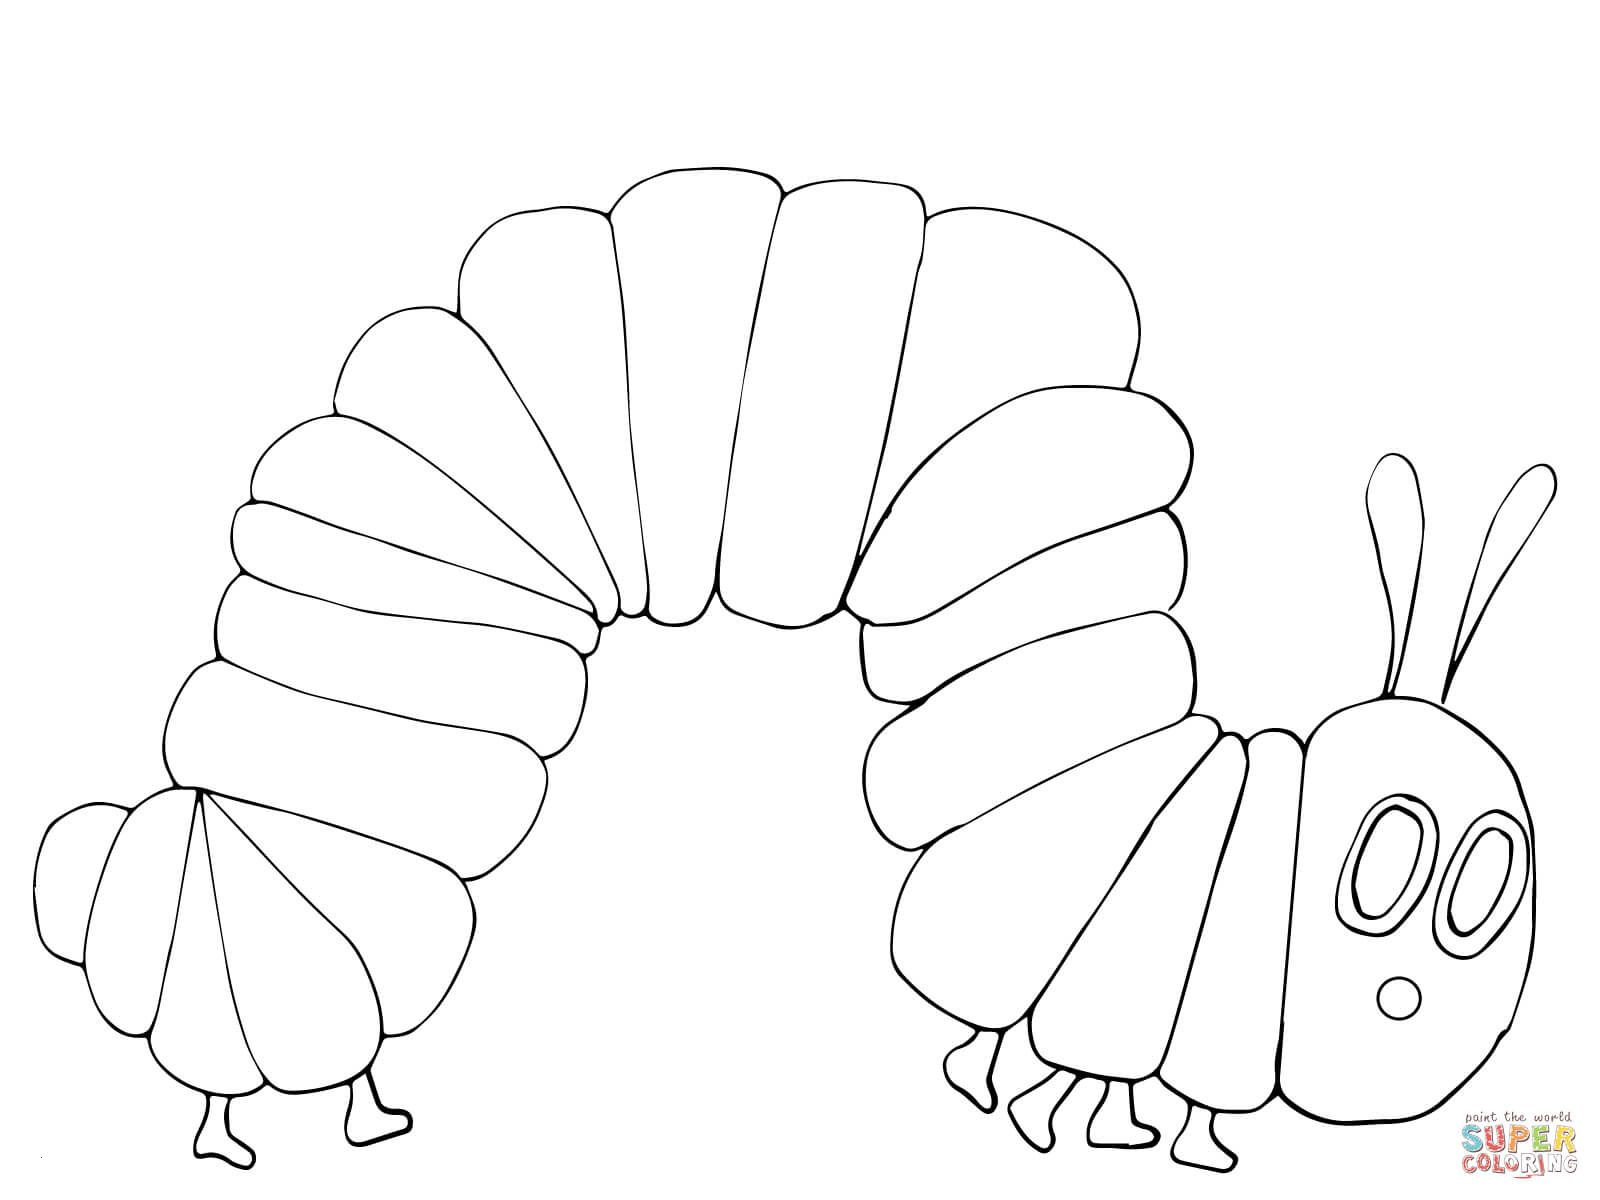 caterpillar coloring pages free free caterpillar coloring pages download and print caterpillar coloring pages free